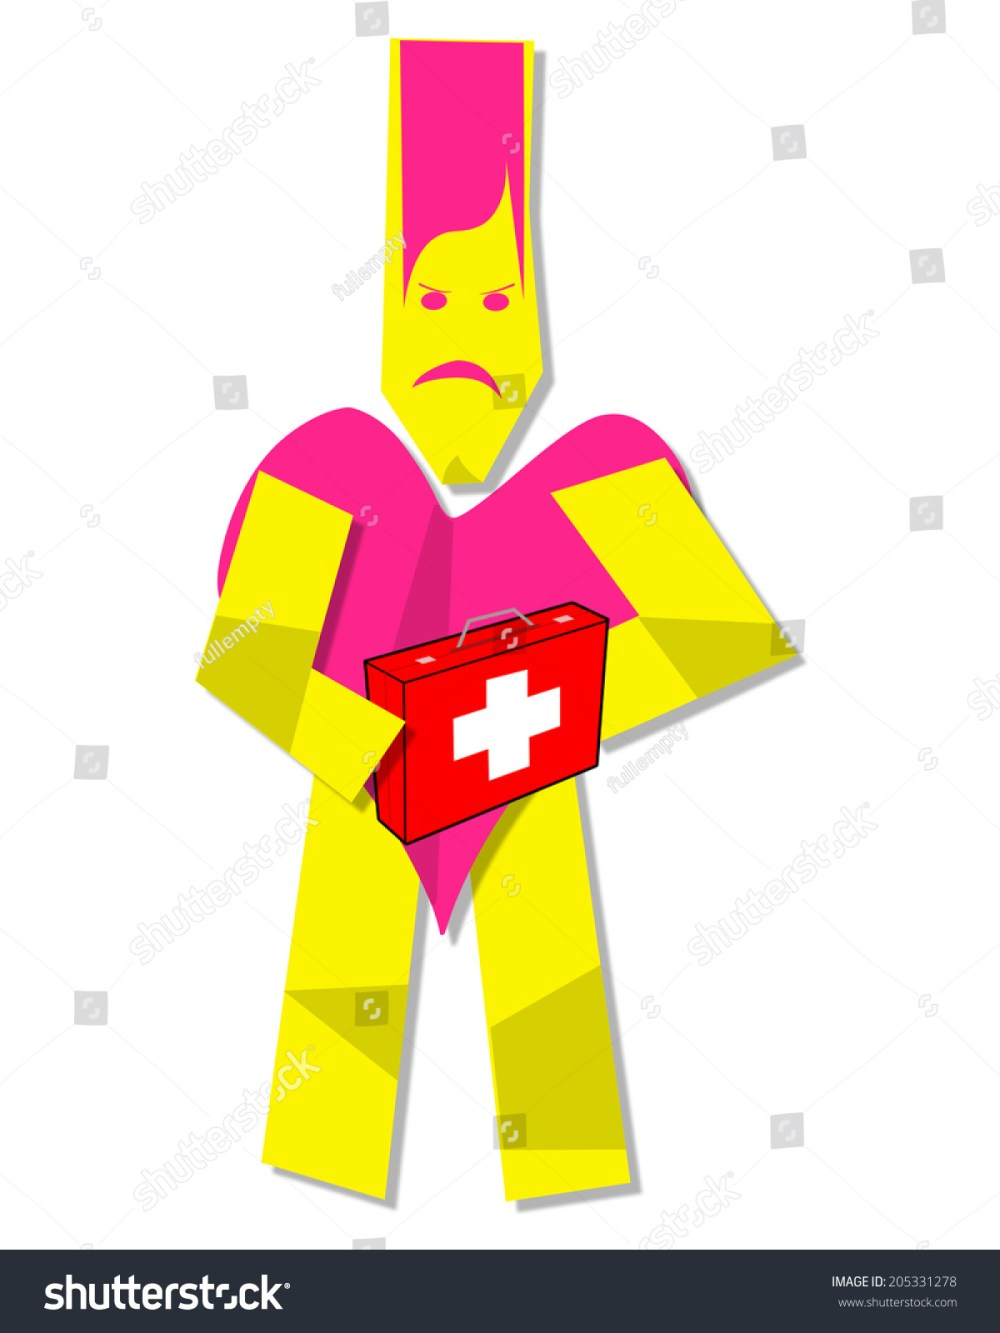 medium resolution of illustration of heart man clipart with first aid kit